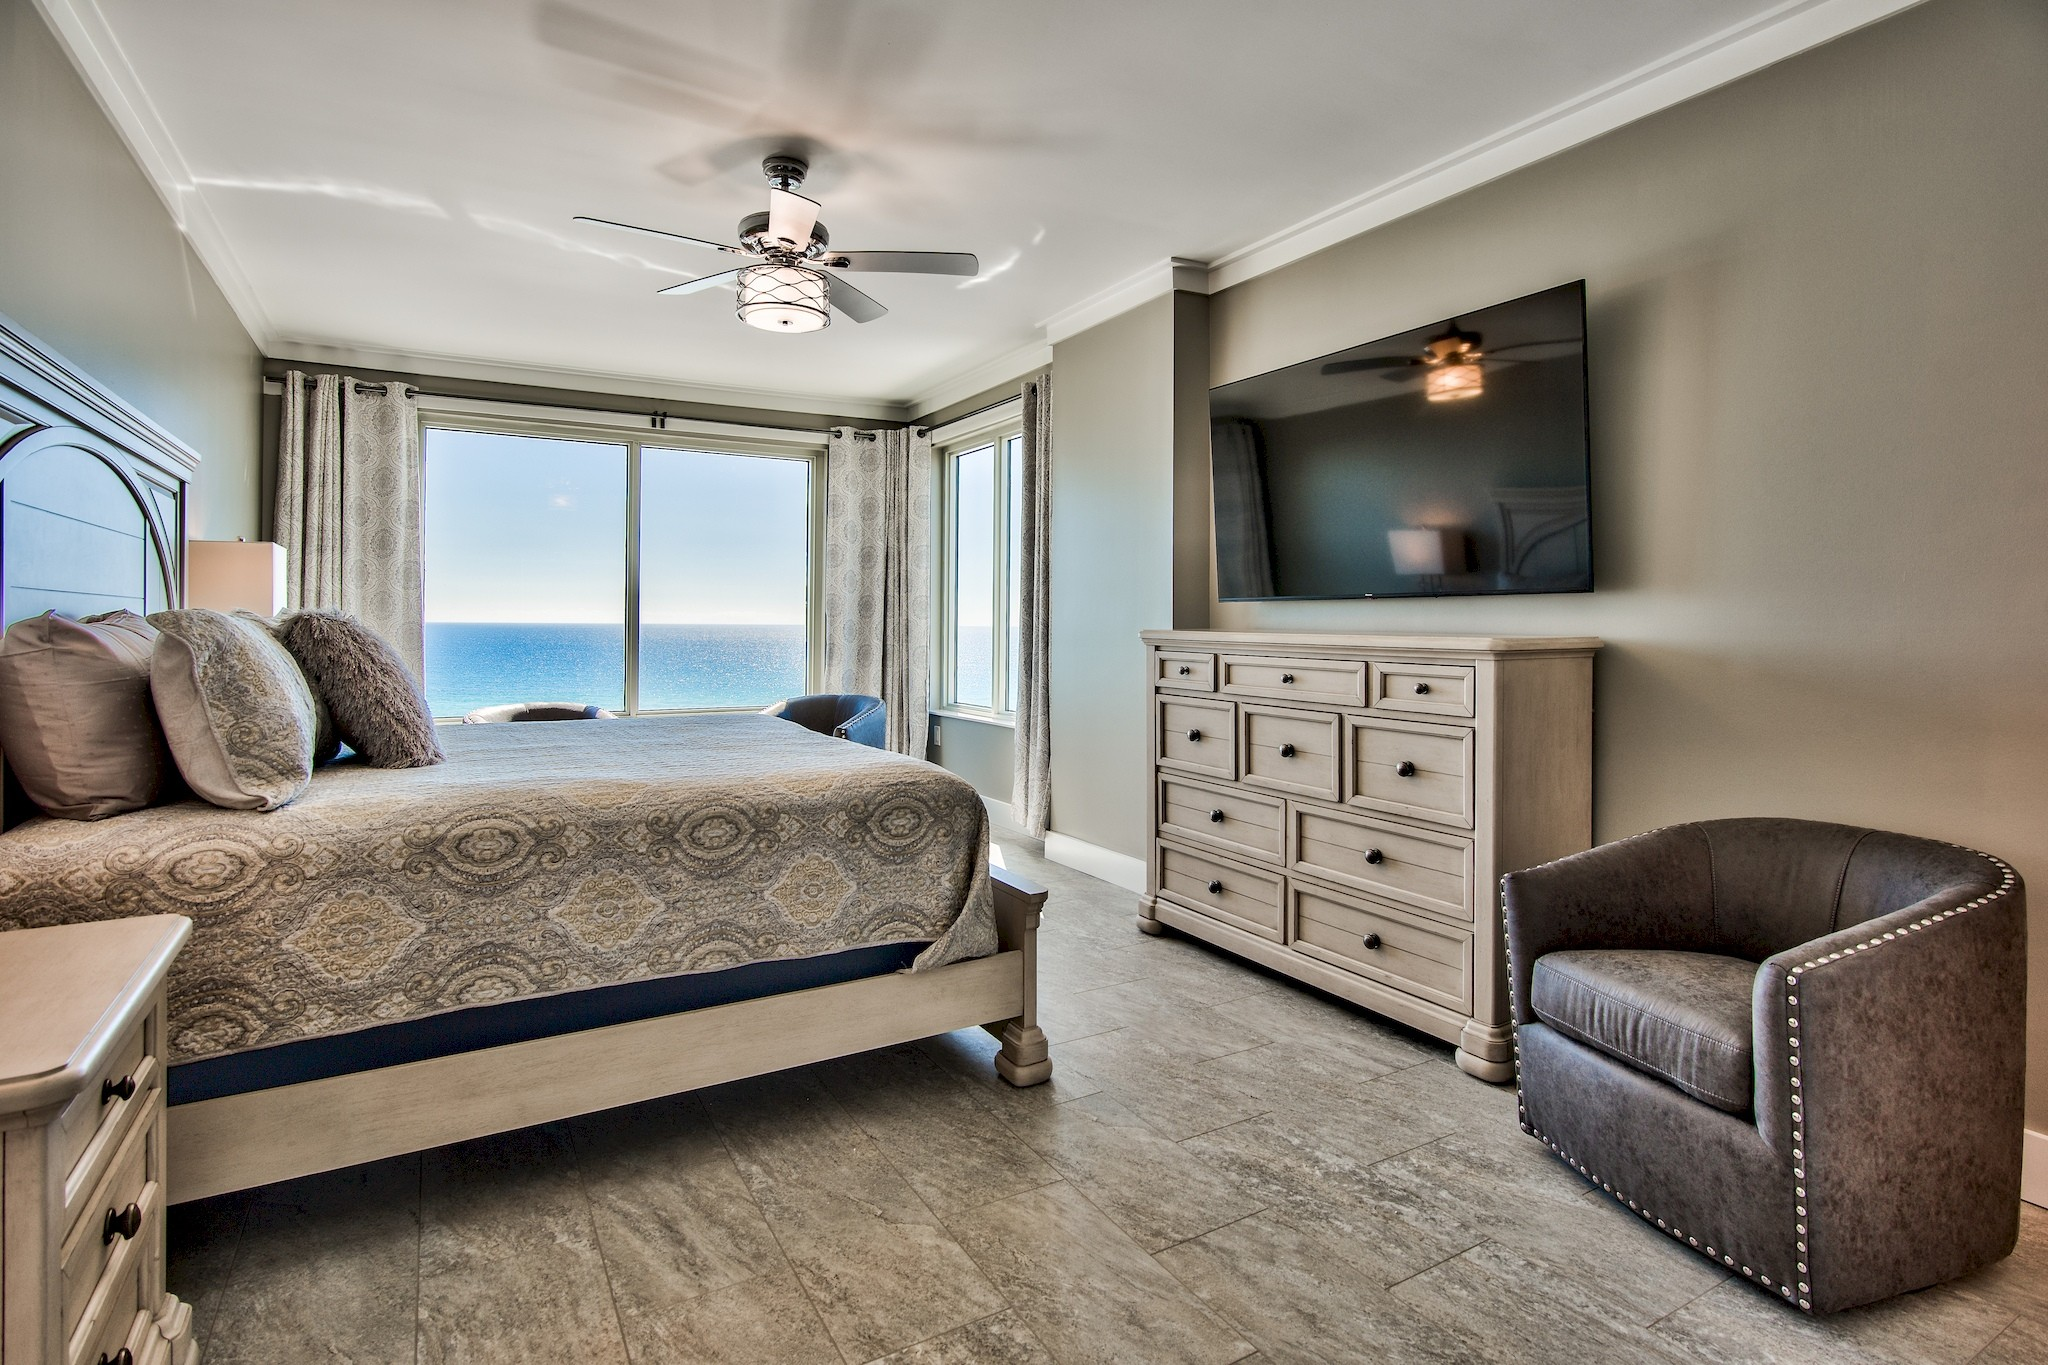 2nd King Master Suite with 60